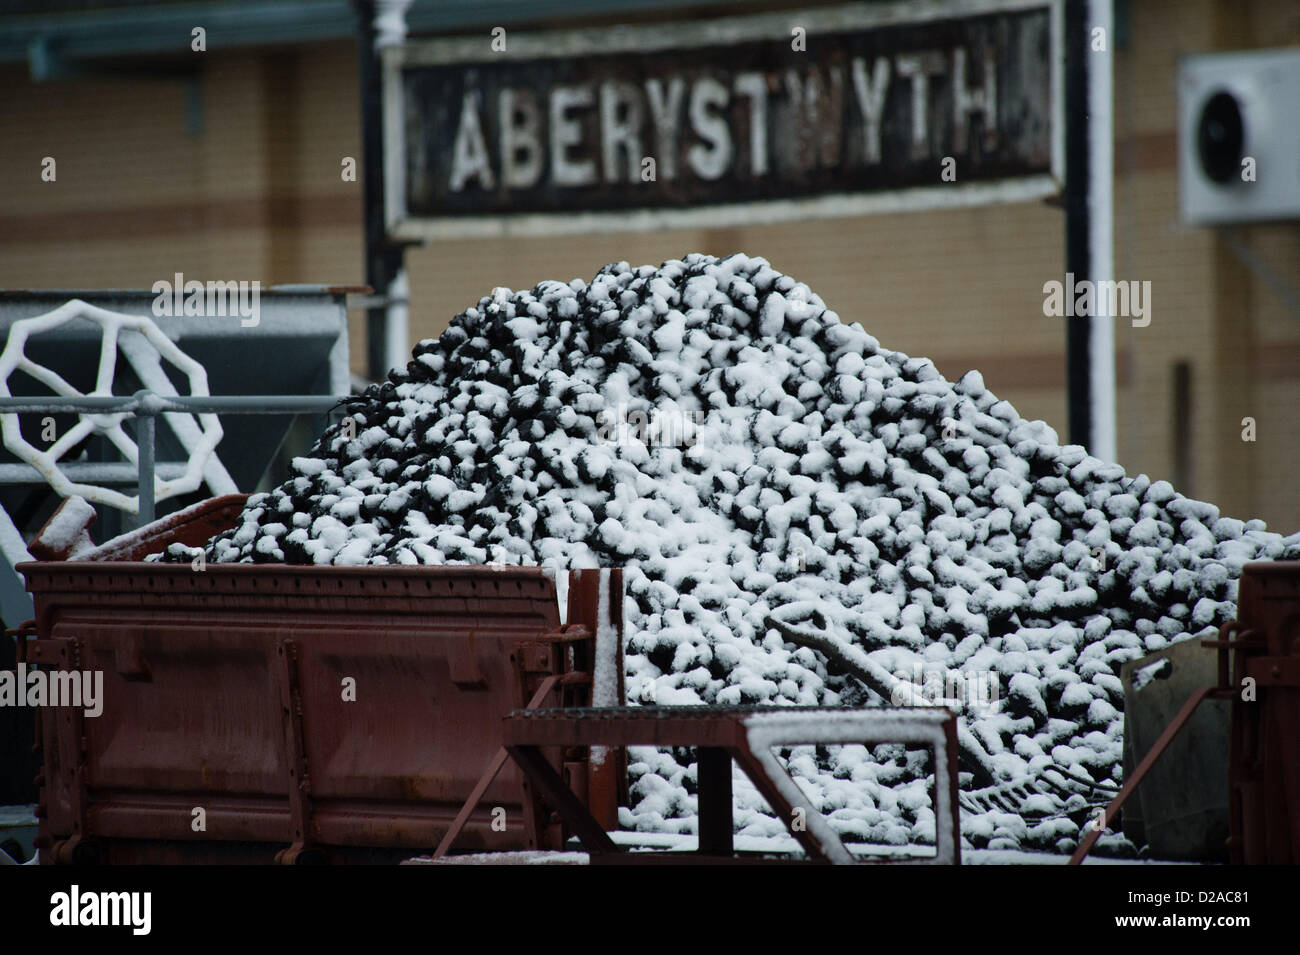 Aberystwyth, Wales, UK. 18th January 2013. Some snowy weather but Aberystwyth on the west coast of Wales escapes Stock Photo